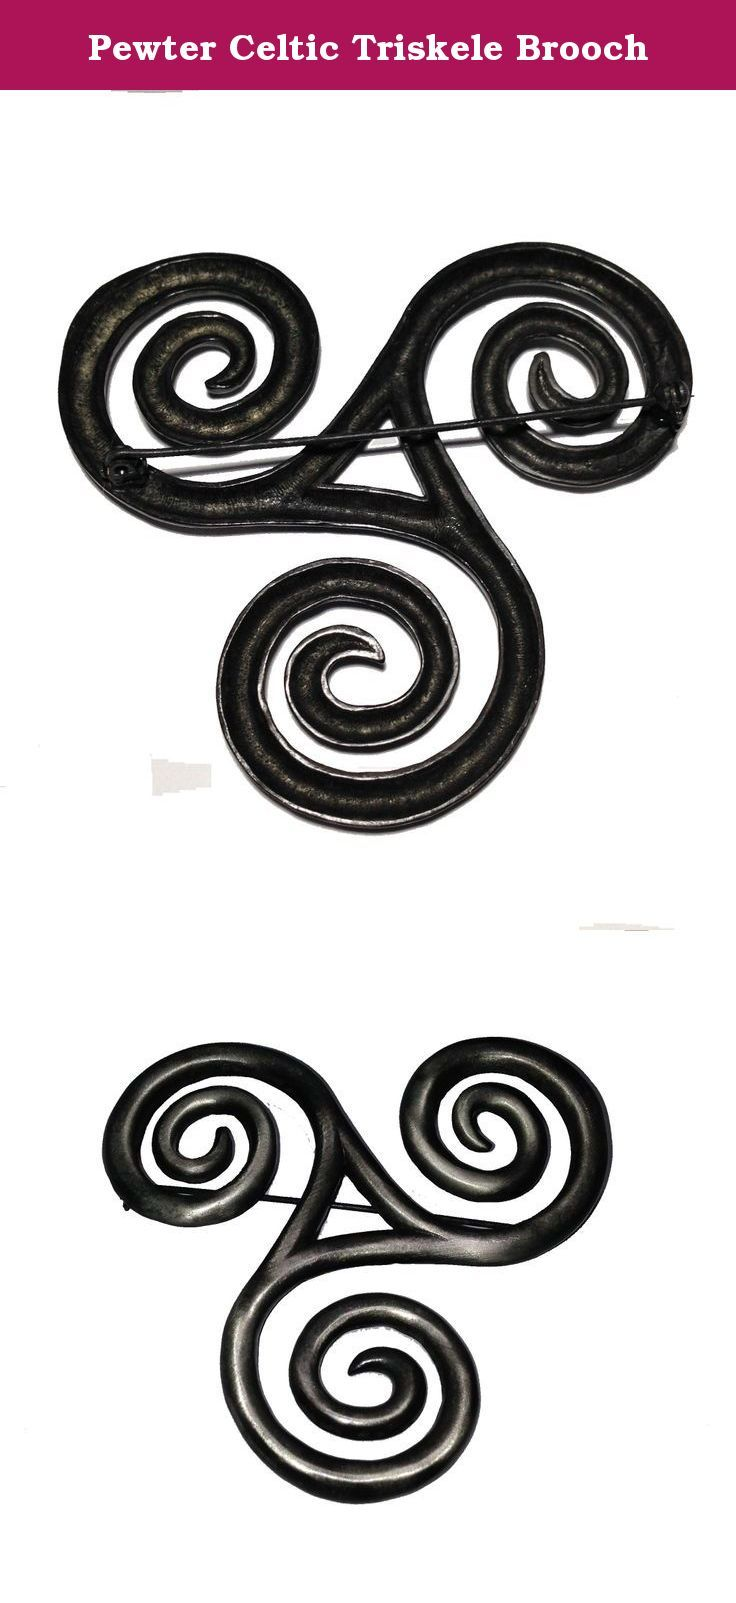 Pewter Celtic Triskele Brooch This Beautifully Crafted Triskele Pin